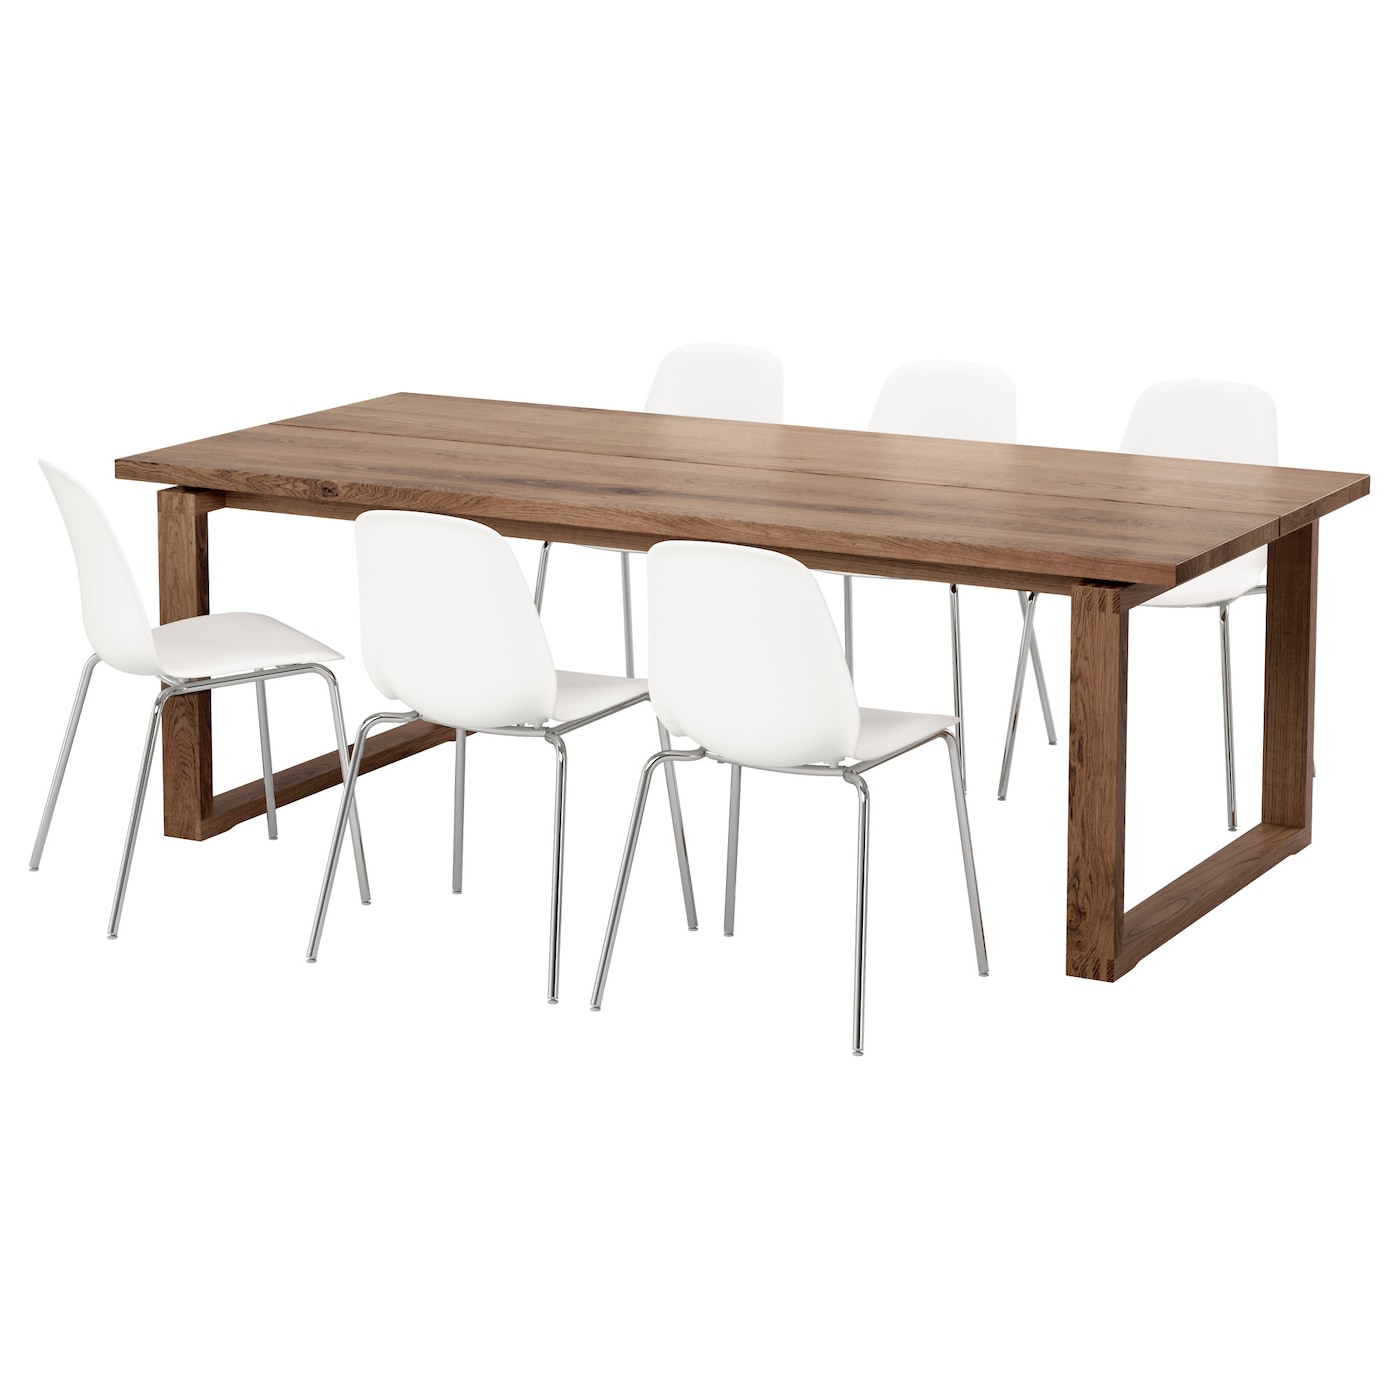 Leifarne m rbyl nga table and 6 chairs brown white 220x100 cm ikea - Ikea wooden dining table chairs ...